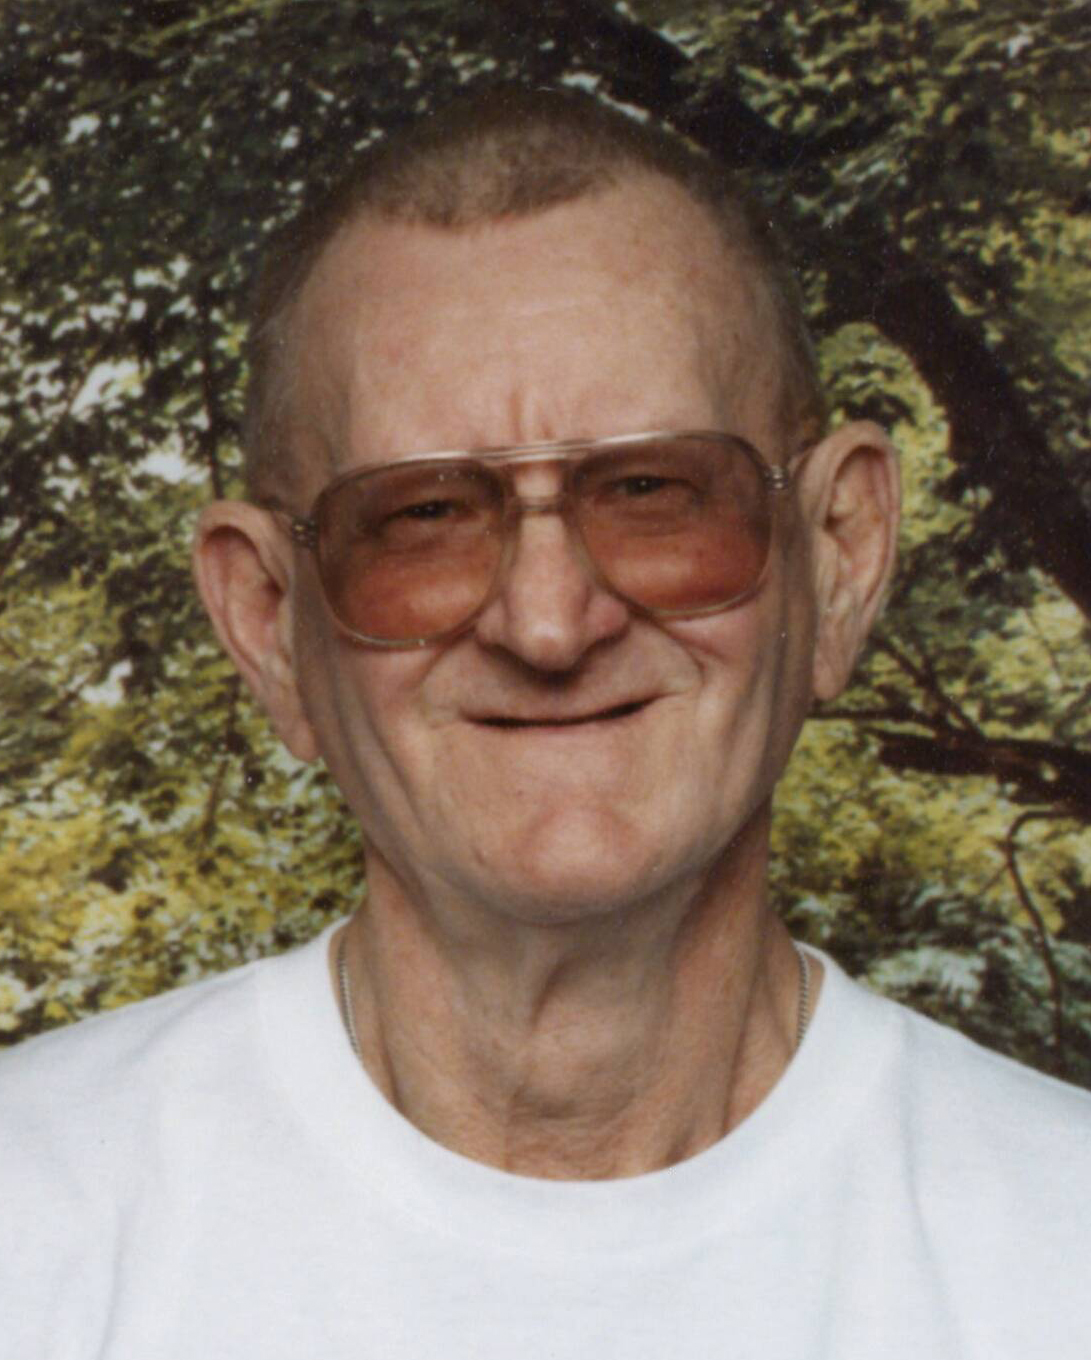 John (Dwight) Edwards, 79 years of age, of Holdrege